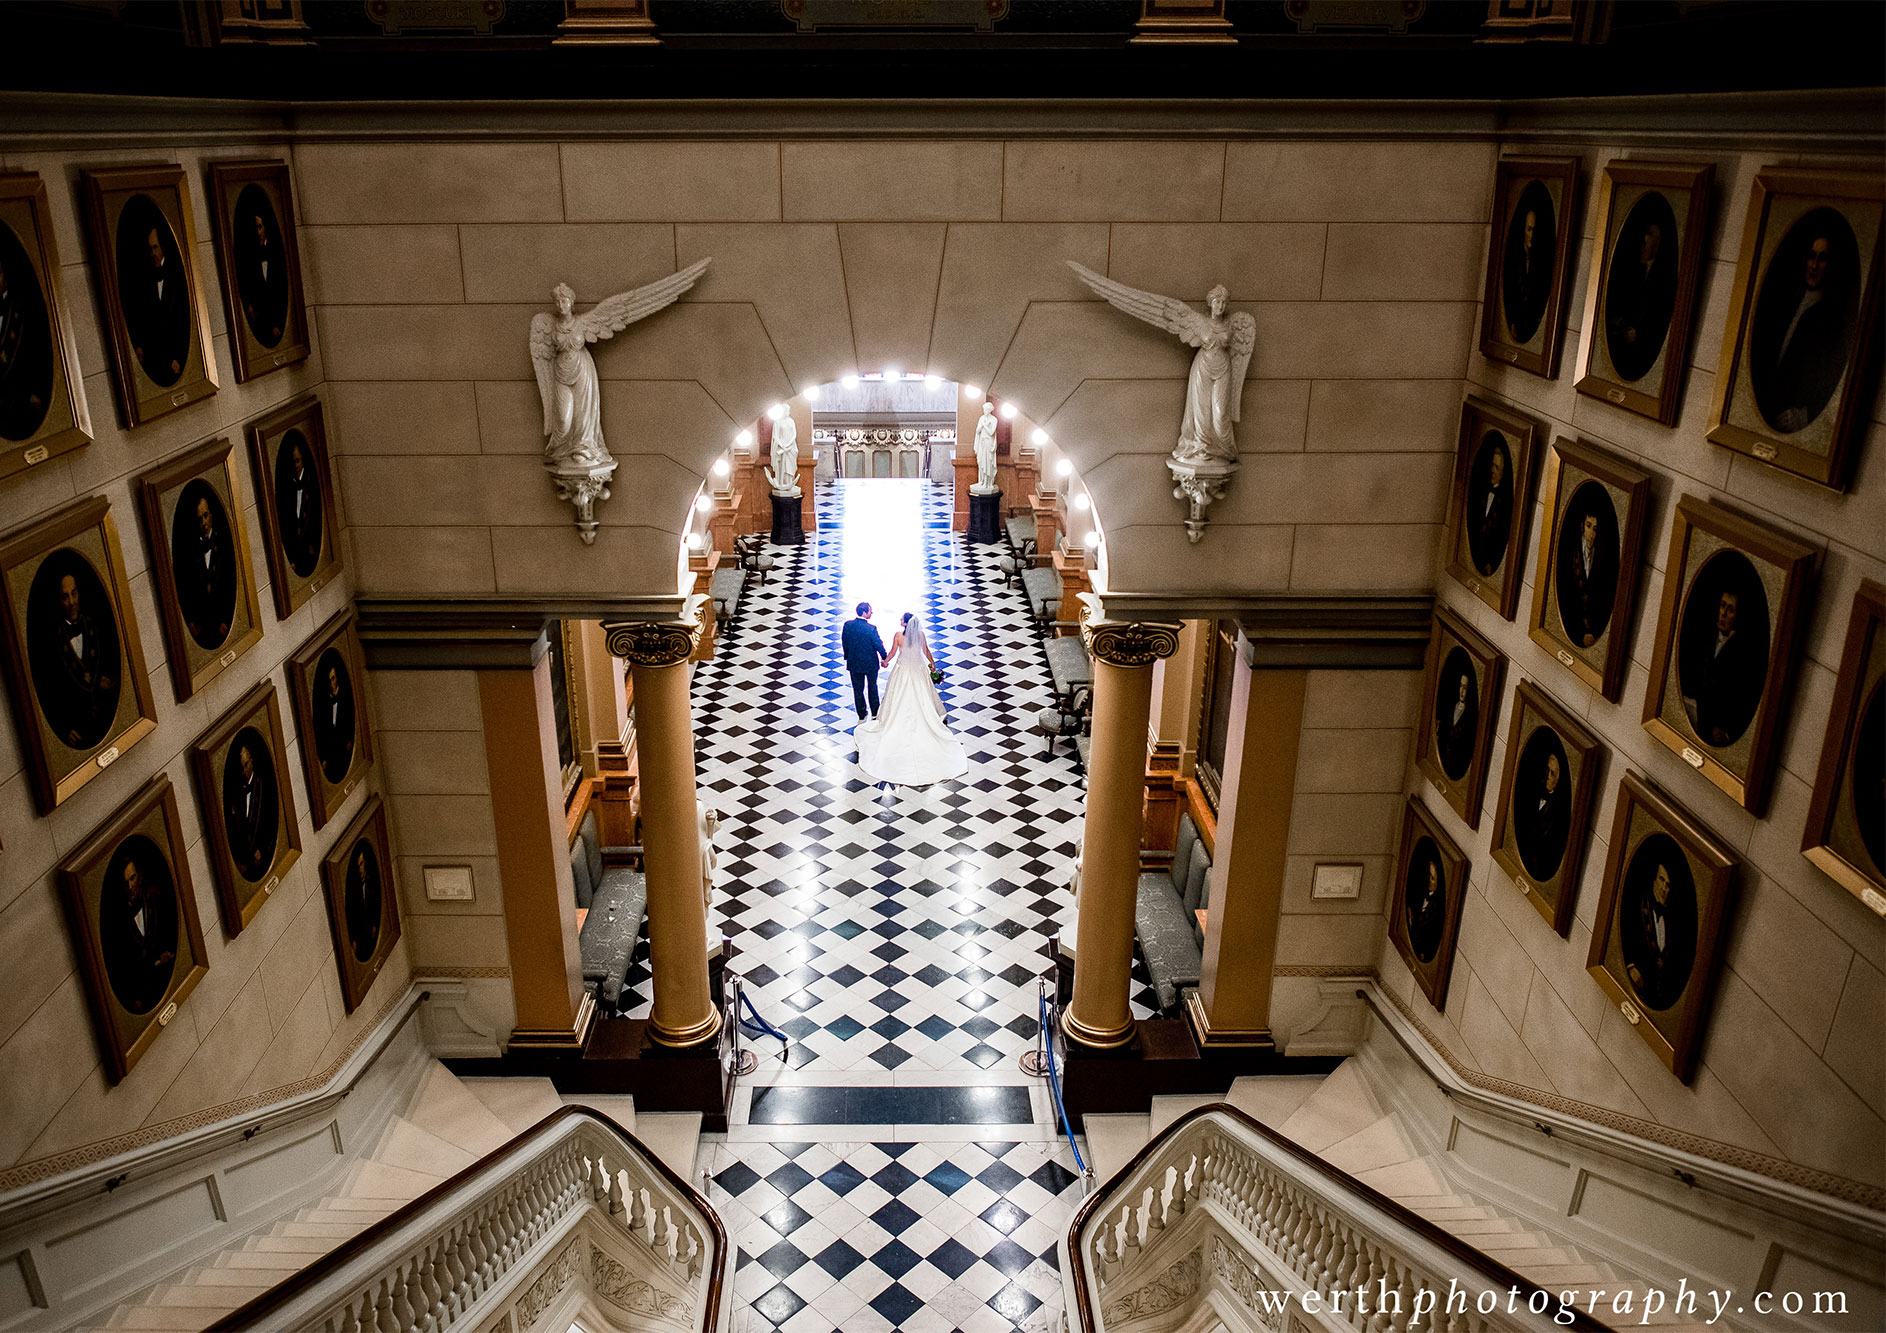 Philadelphias historic fine event venue one north broad the spirit history and luxury of philadelphia comes alive inside the breathtaking masonic temple host an intimate wedding ceremony a grand reception and junglespirit Gallery